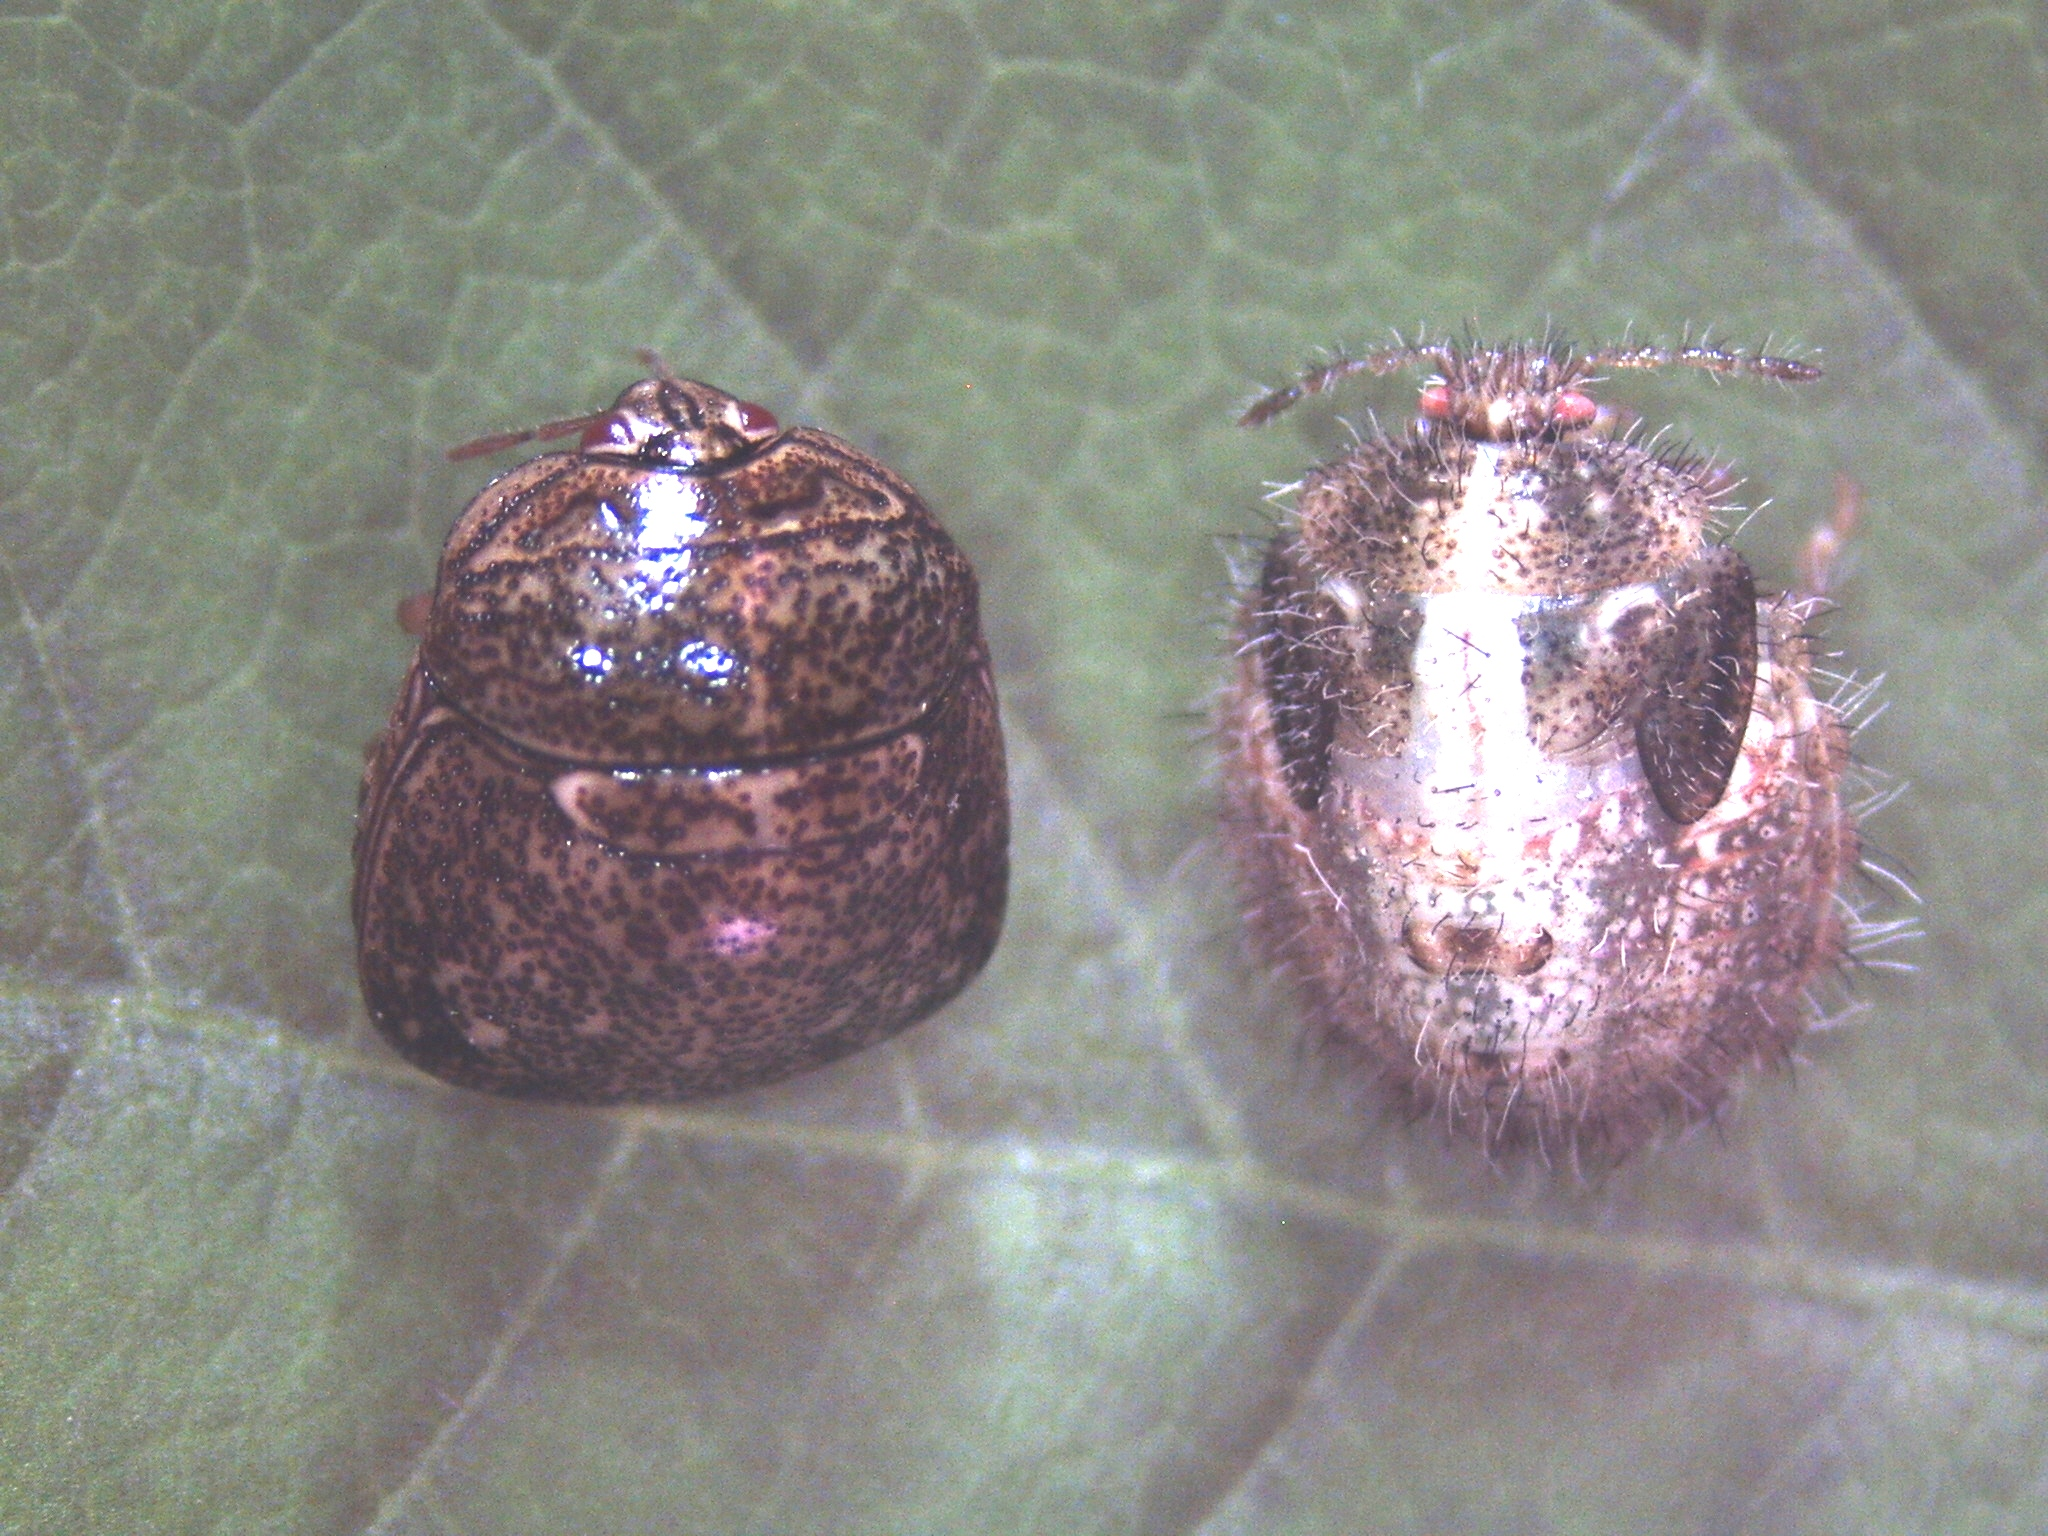 Kudzu bug continues its trek across the state